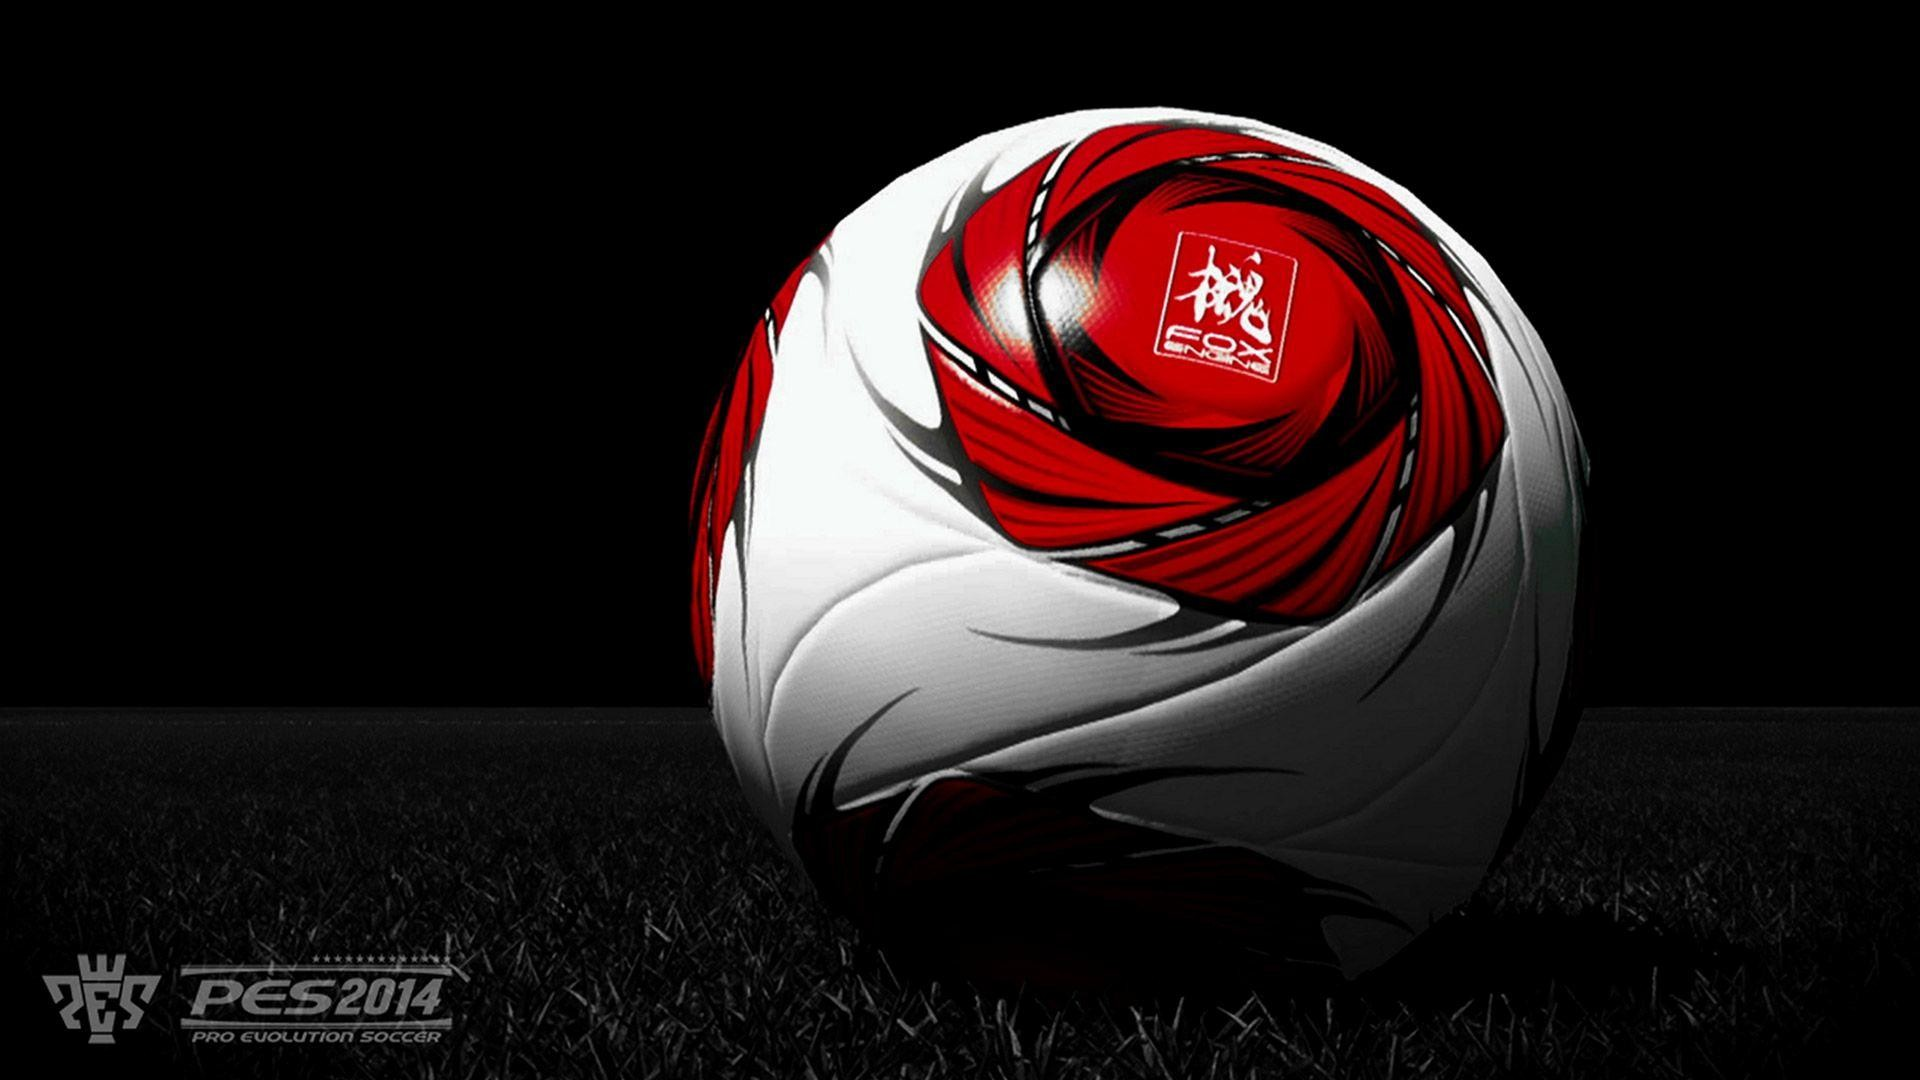 wallpaper.wiki-Cool-Soccer-Background-HD-PIC-WPD008221